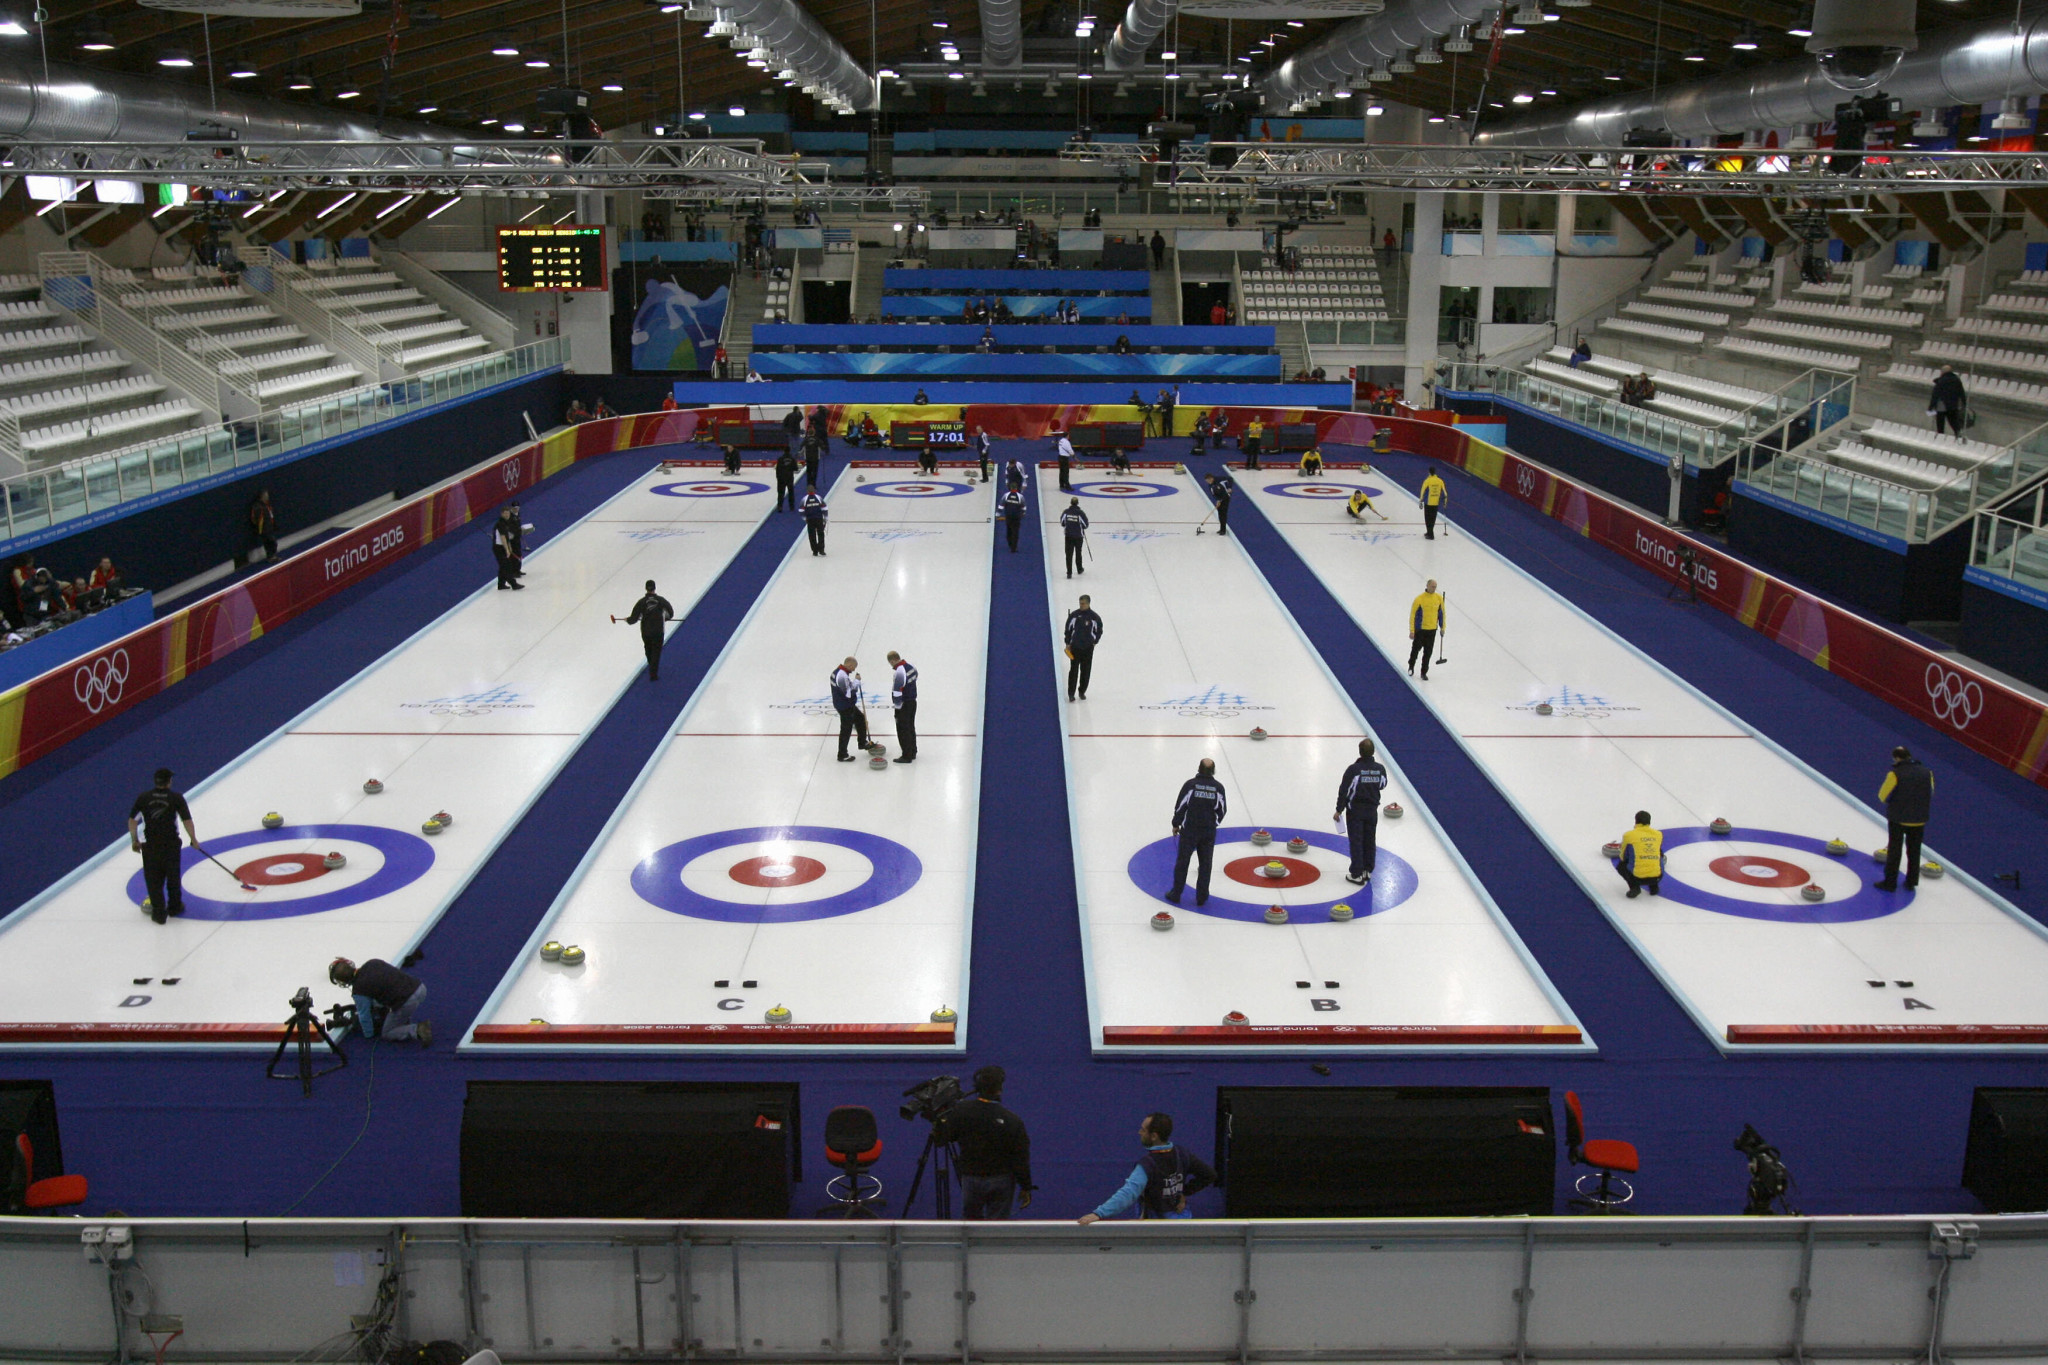 The Netherlands has never qualified for a curling competition at a Winter Olympics before ©Getty Images